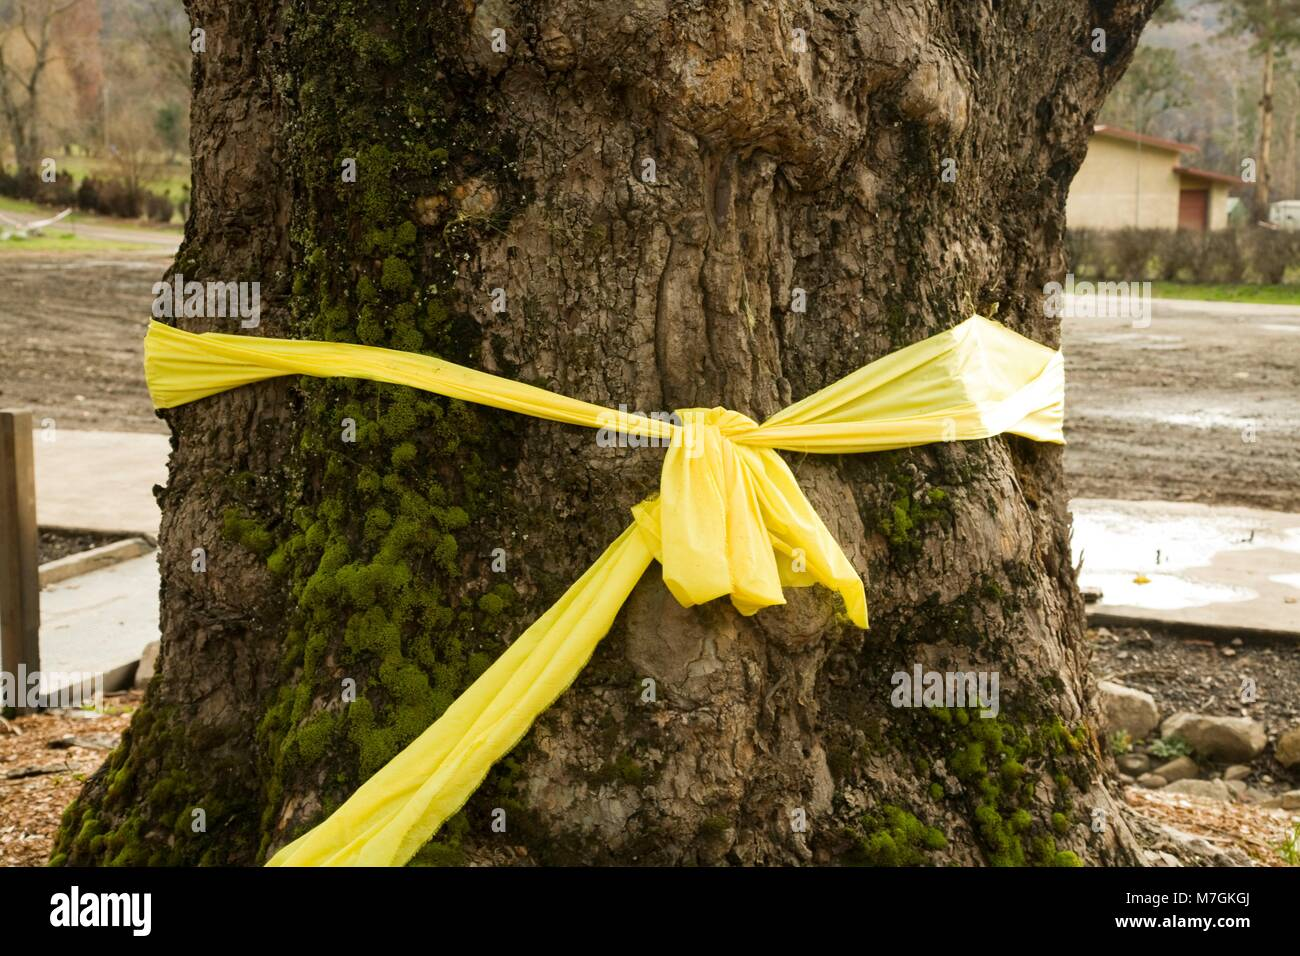 YELLOW RIBBON TO COMMEMORATE THE LOSSES DURING THE FIRE OF 2009, MARYSVILLE, MELBOURNE, AUSTRALIA - Stock Image